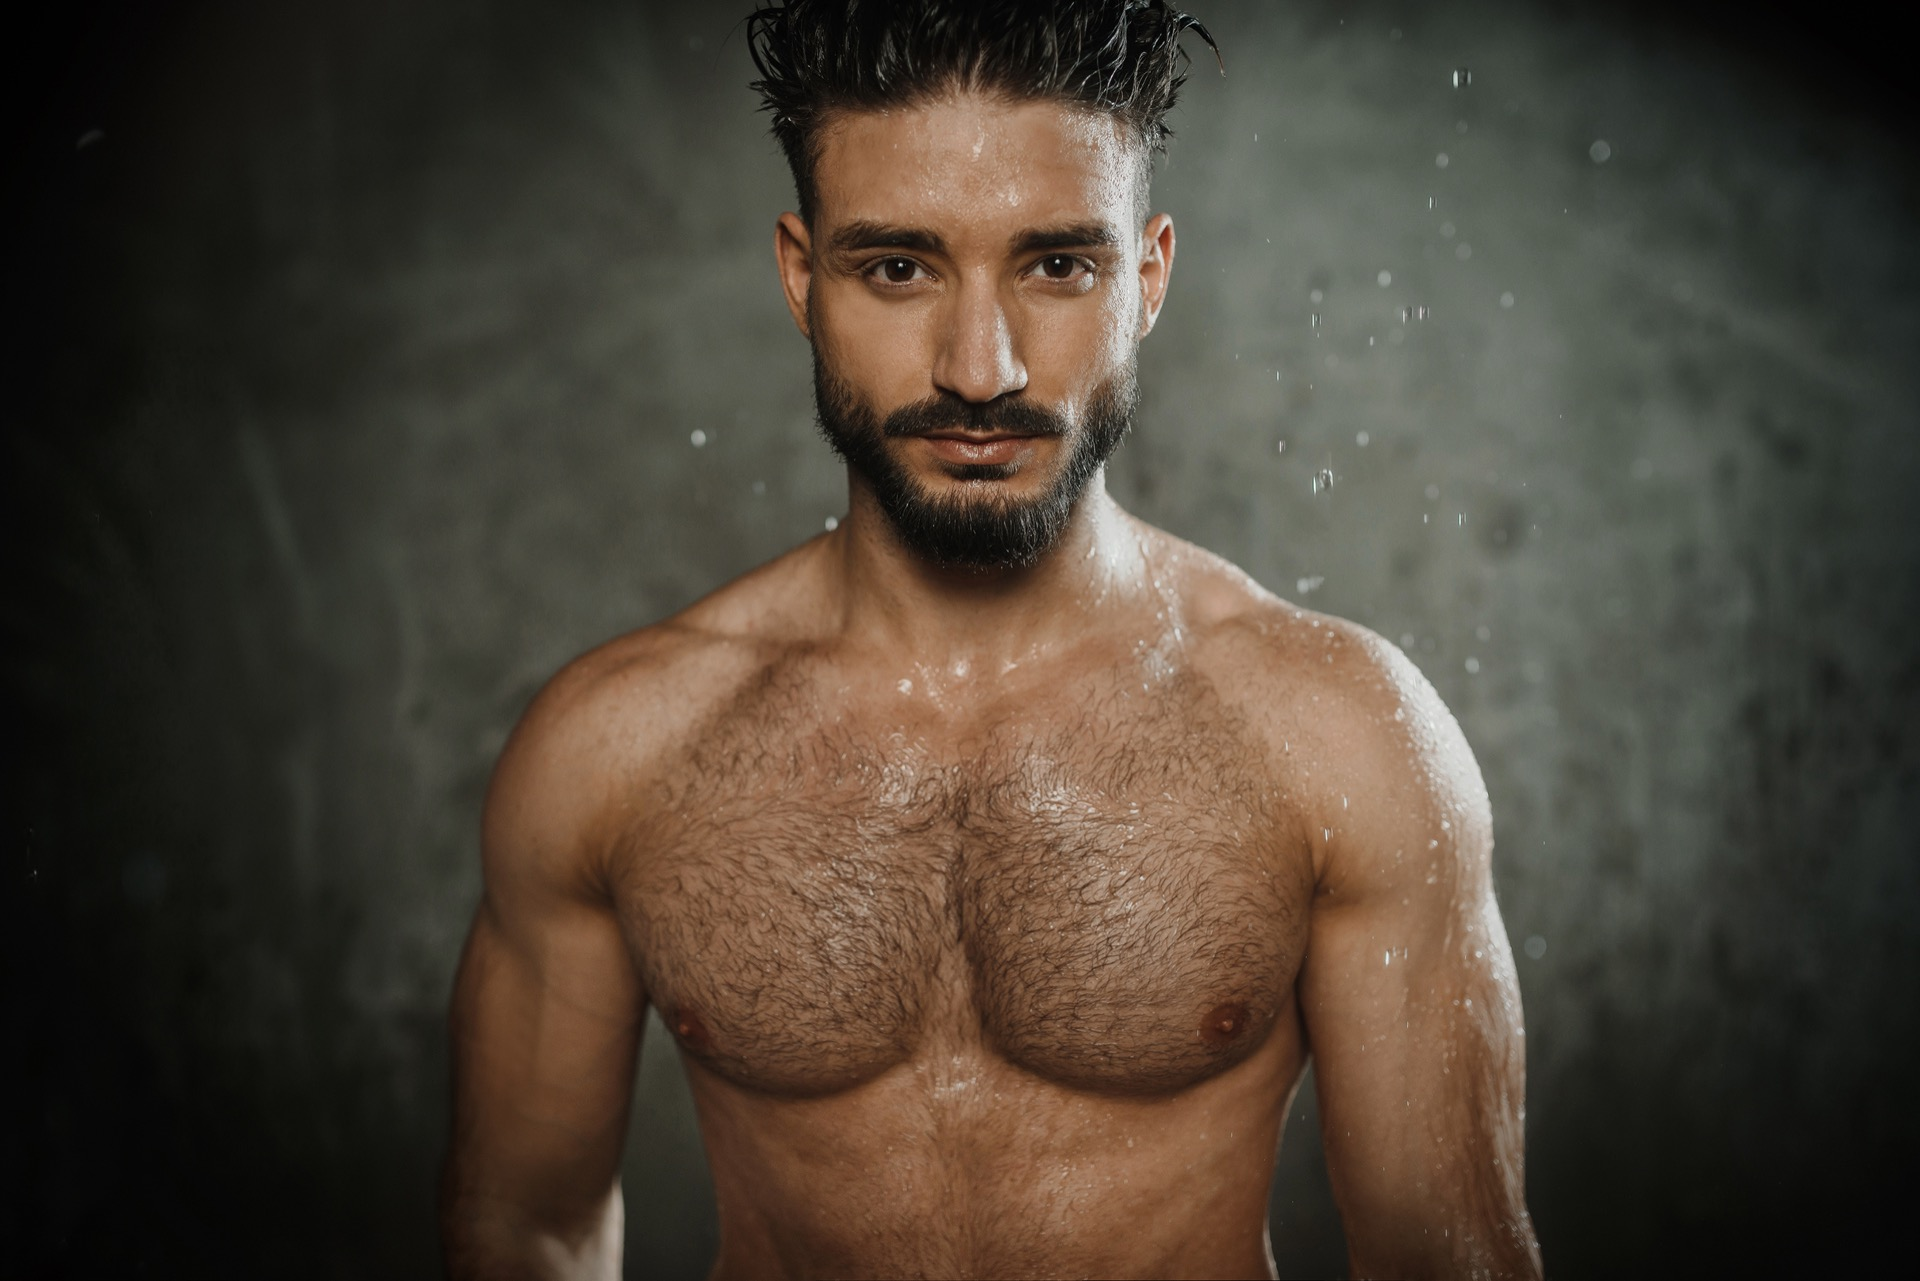 sexy man with drops of water